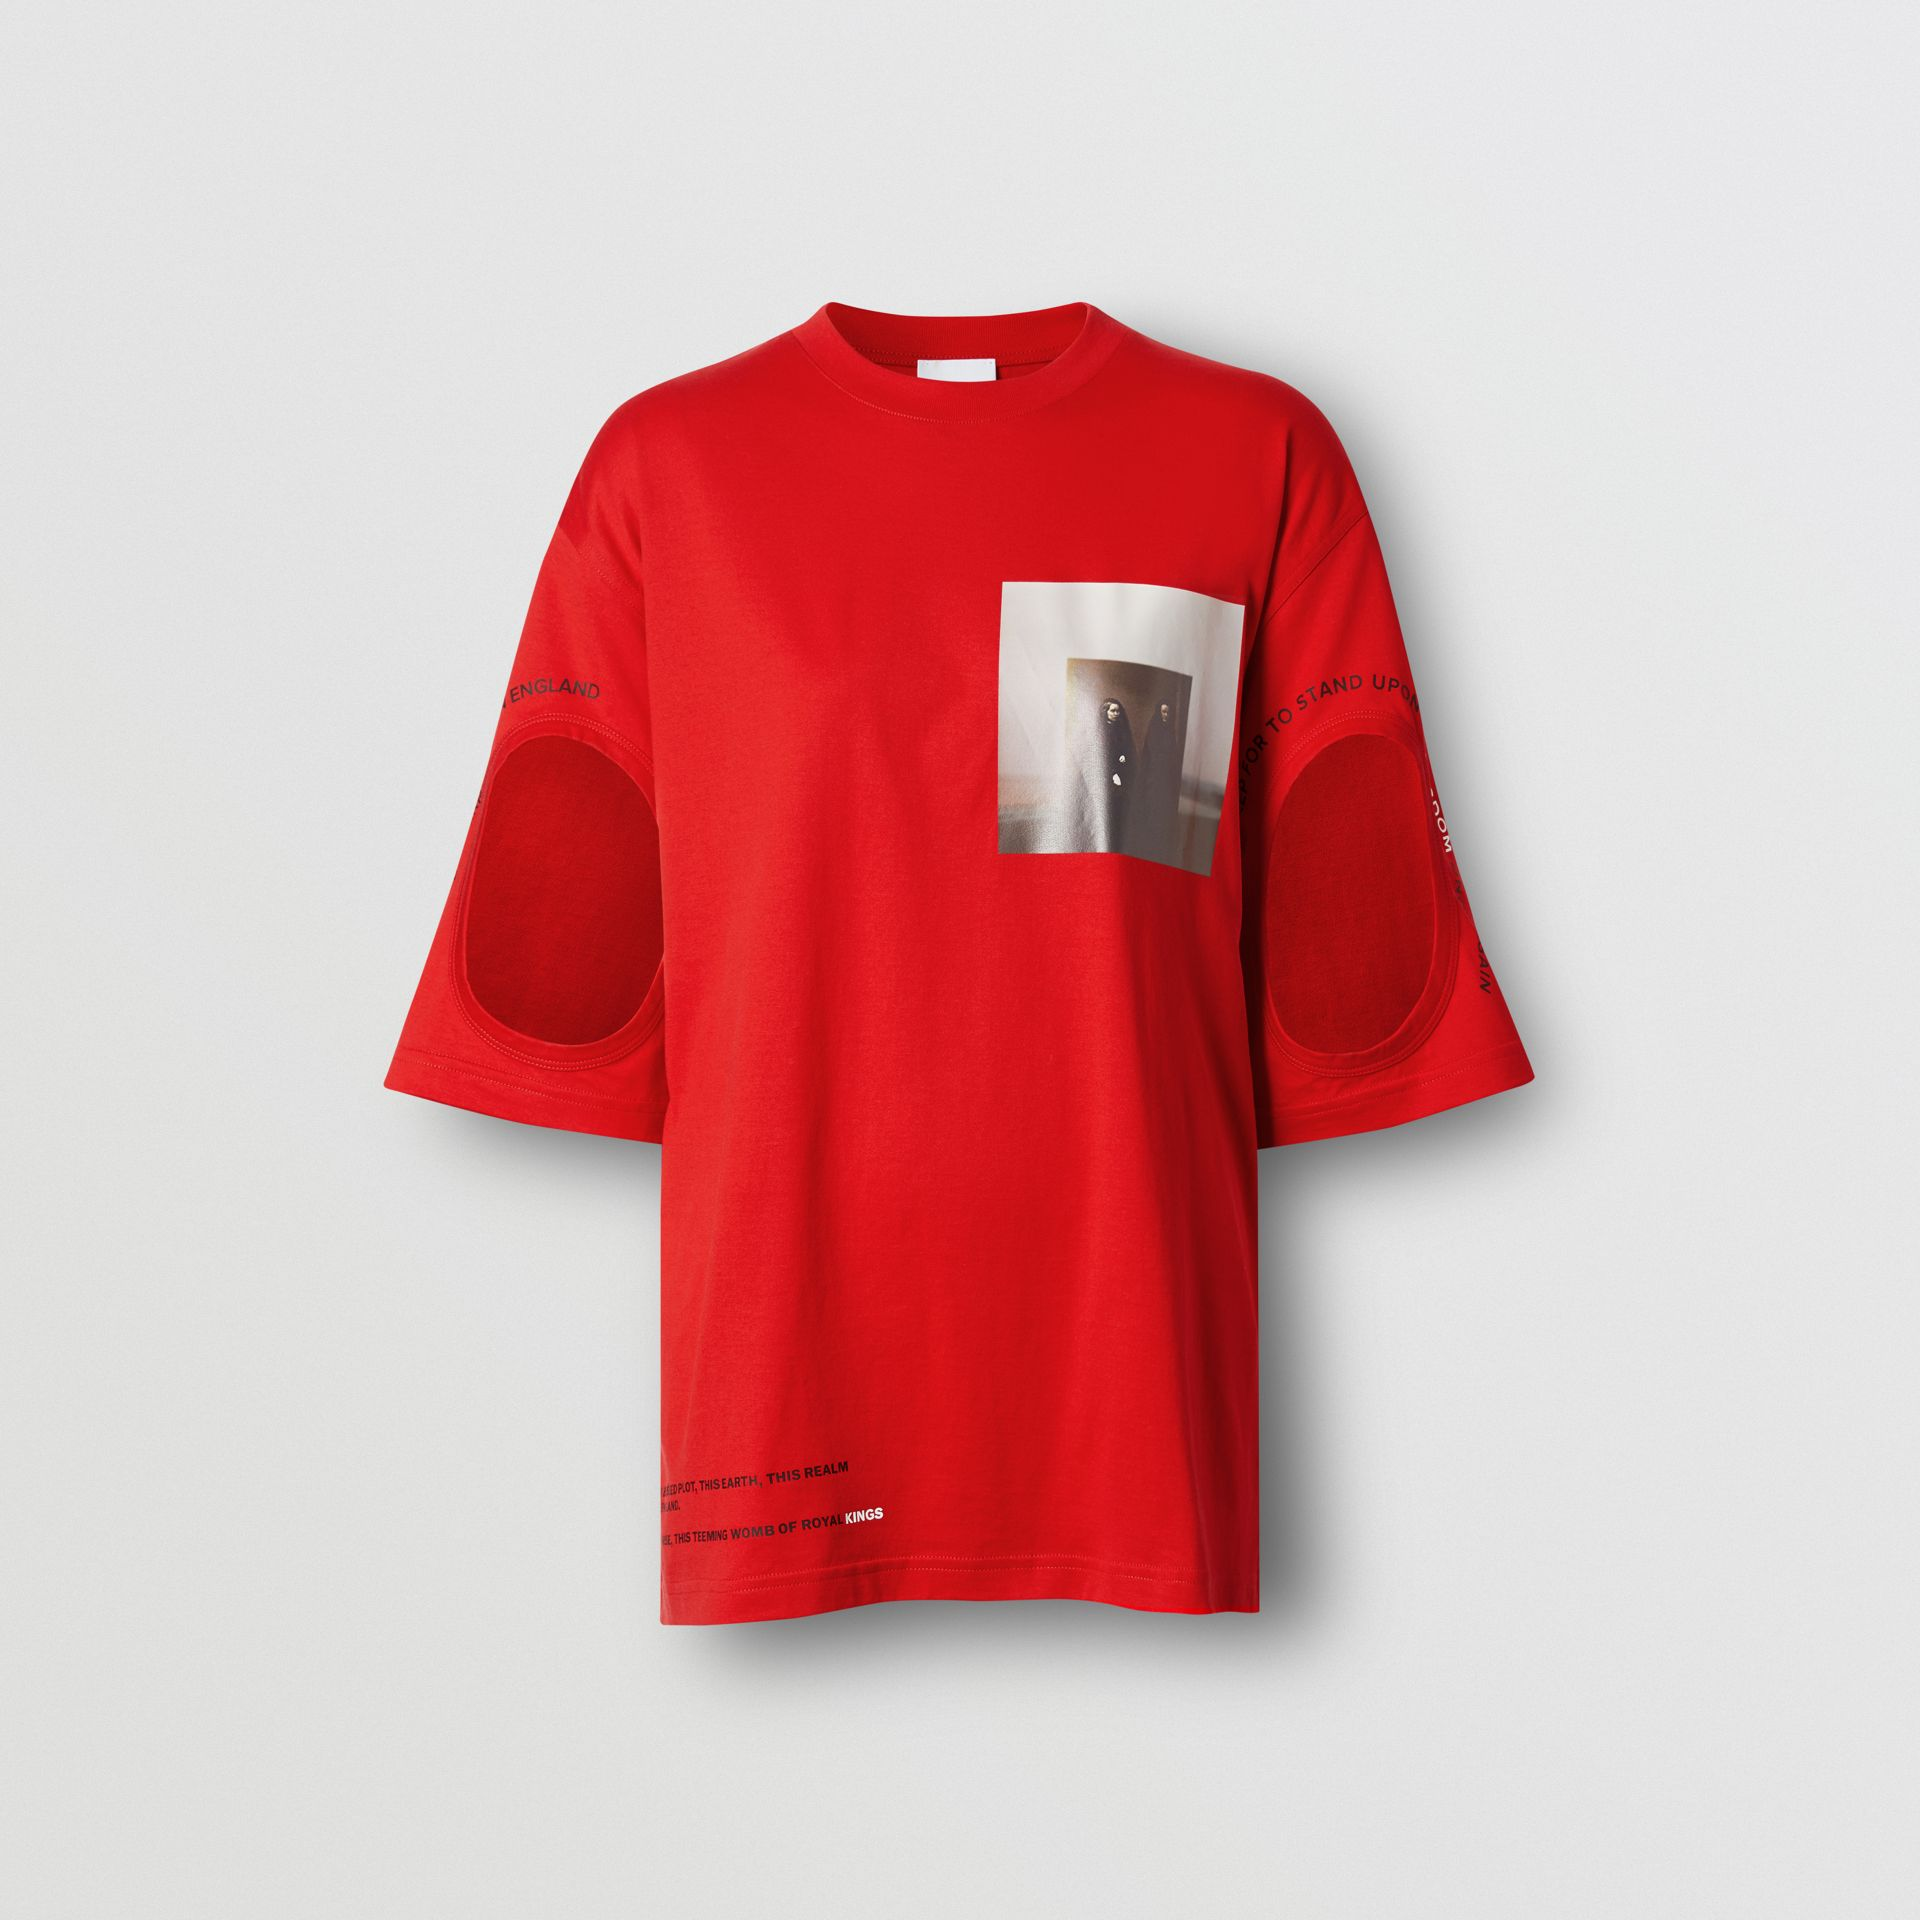 Cut-out Detail Montage Print Oversized T-shirt in Bright Red - Women | Burberry - gallery image 3